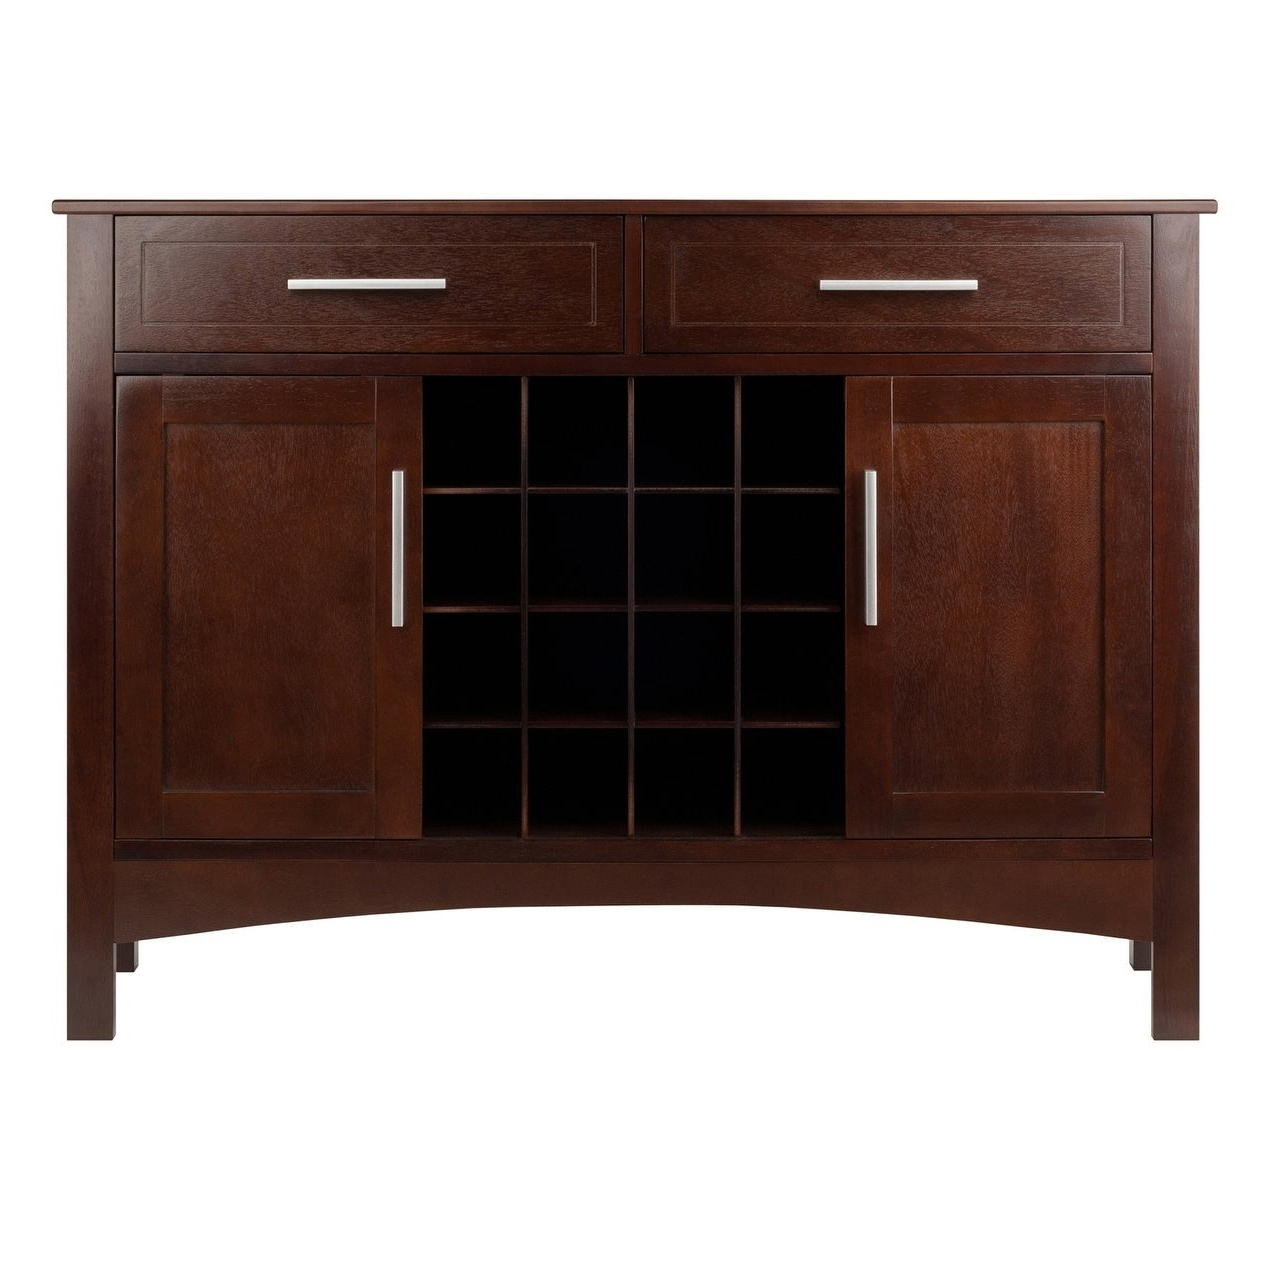 Winsome Gordon Solid And Composite Wood Buffet Cabinet/sideboard In Cappuccino Finish With Solid And Composite Wood Buffets In Cappuccino Finish (View 2 of 20)